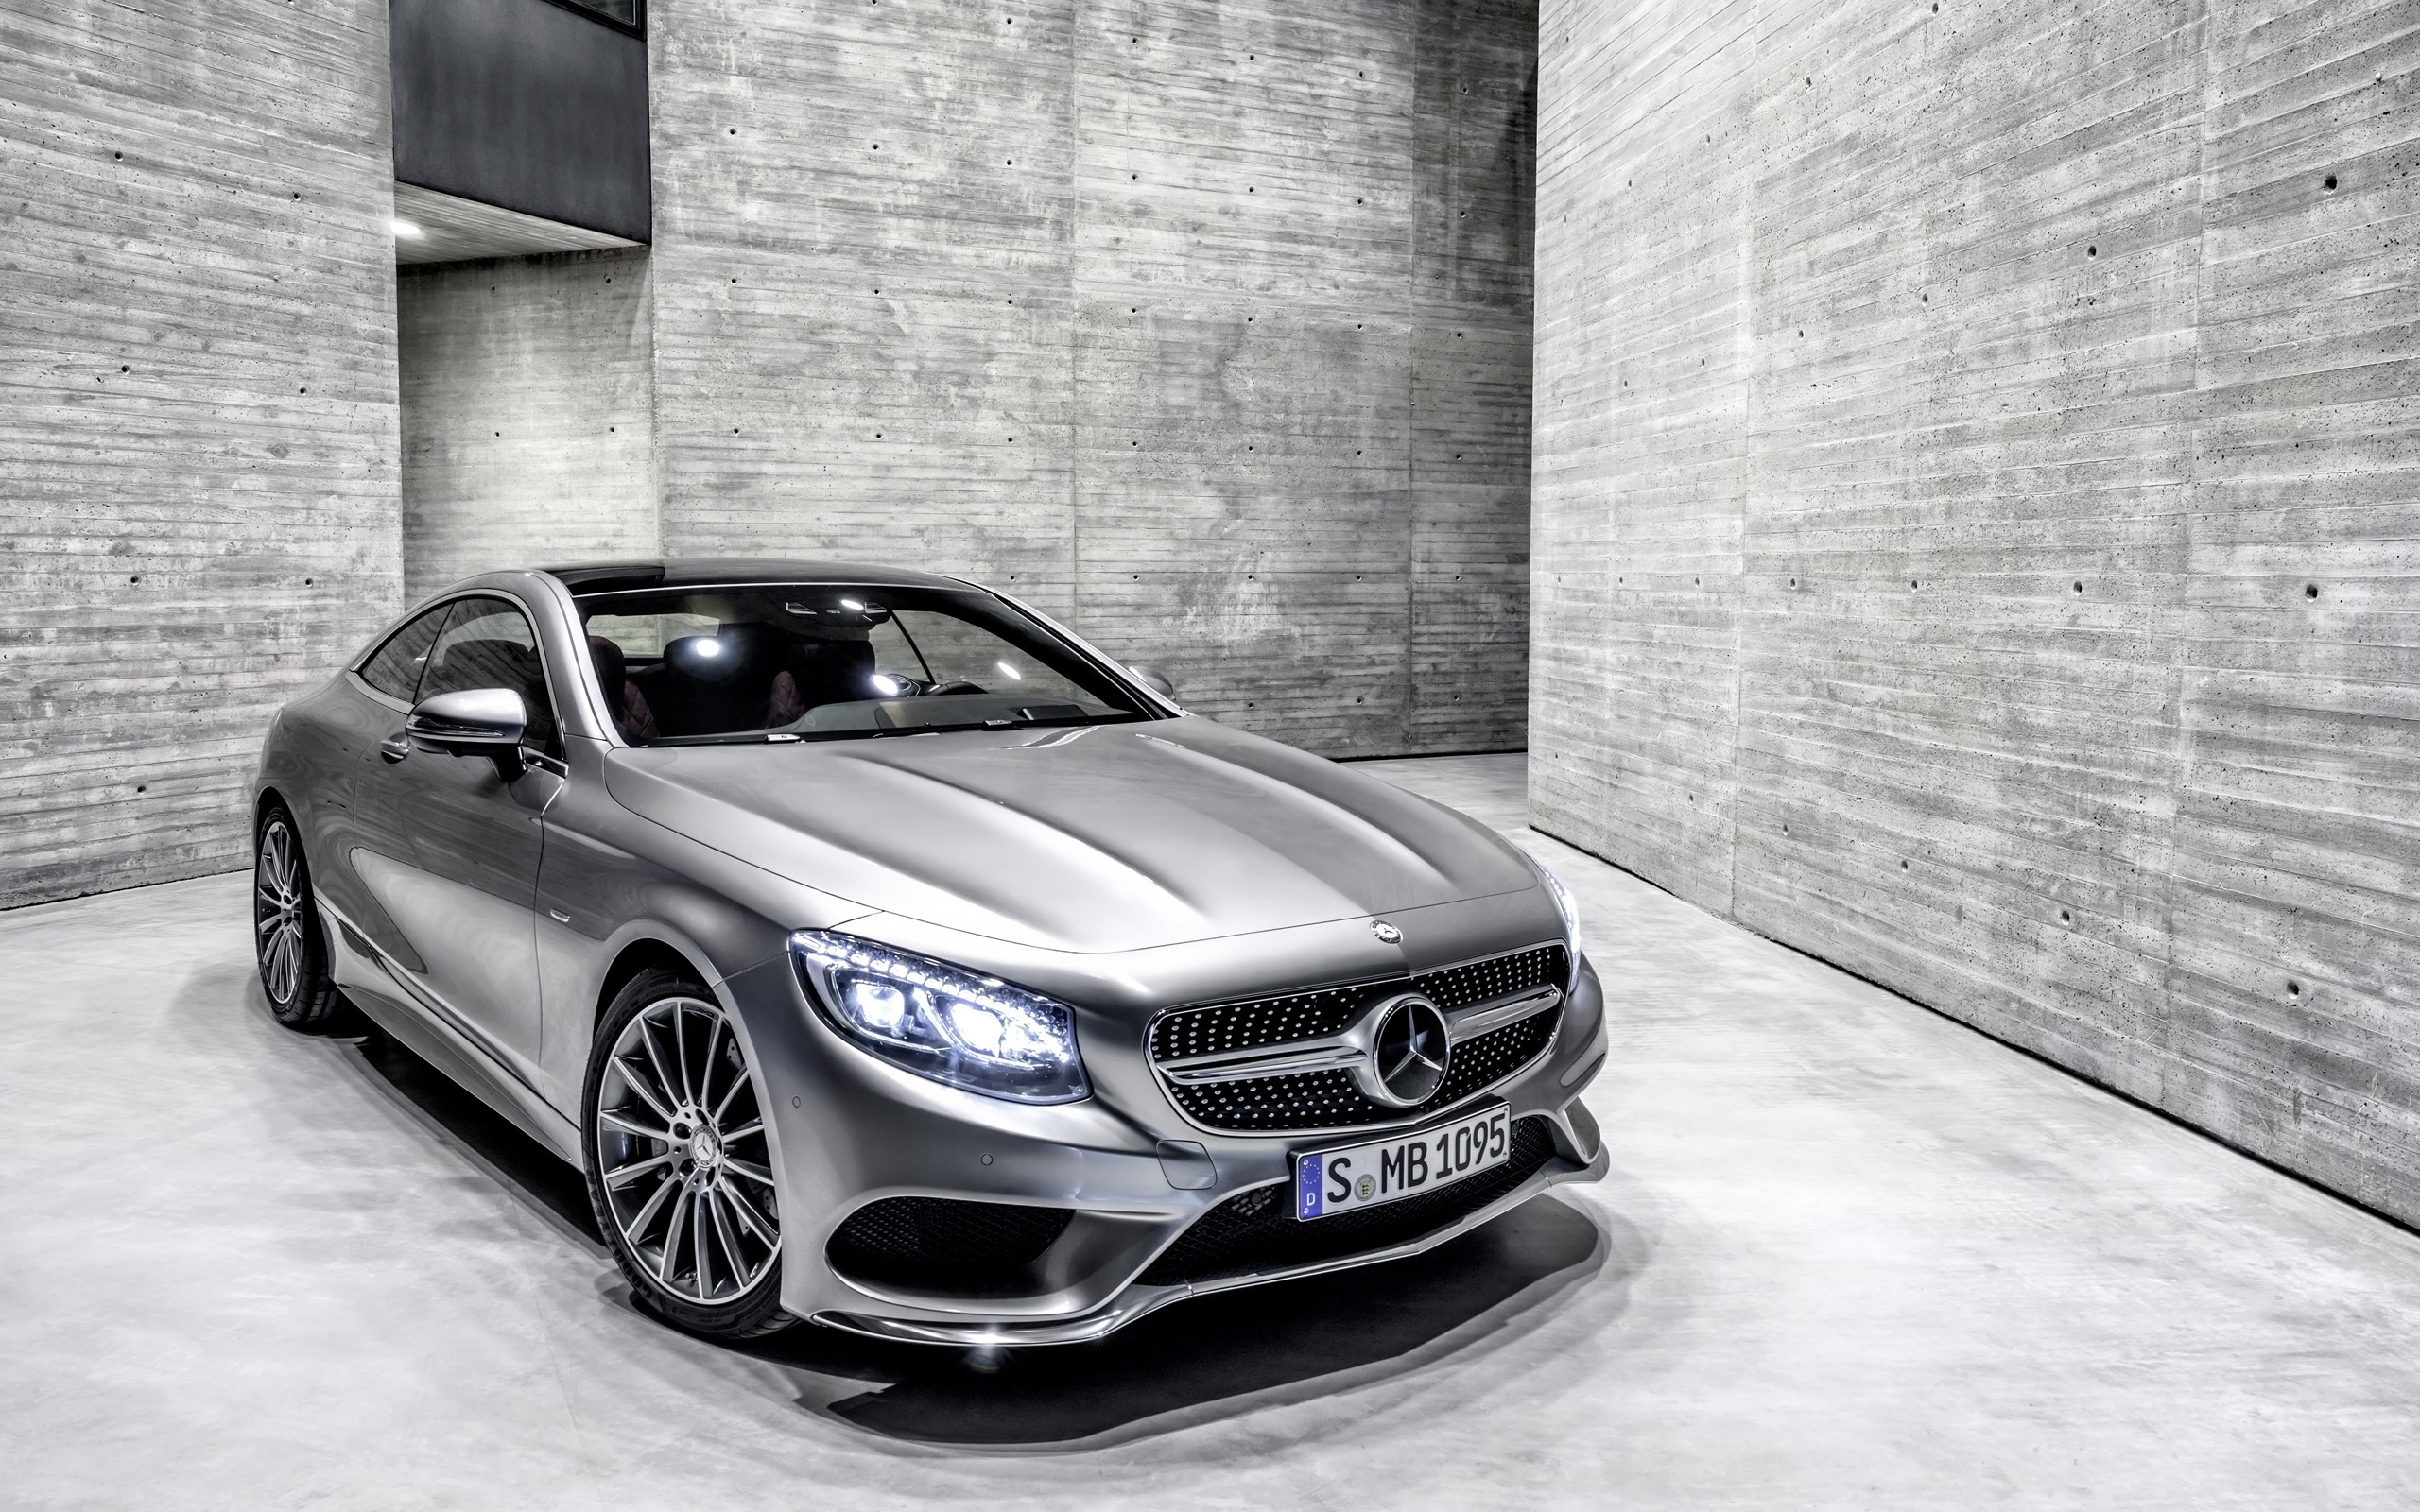 2014 mercedes benz s class coupe wallpaper hd car for Mercedes benz s class coupe